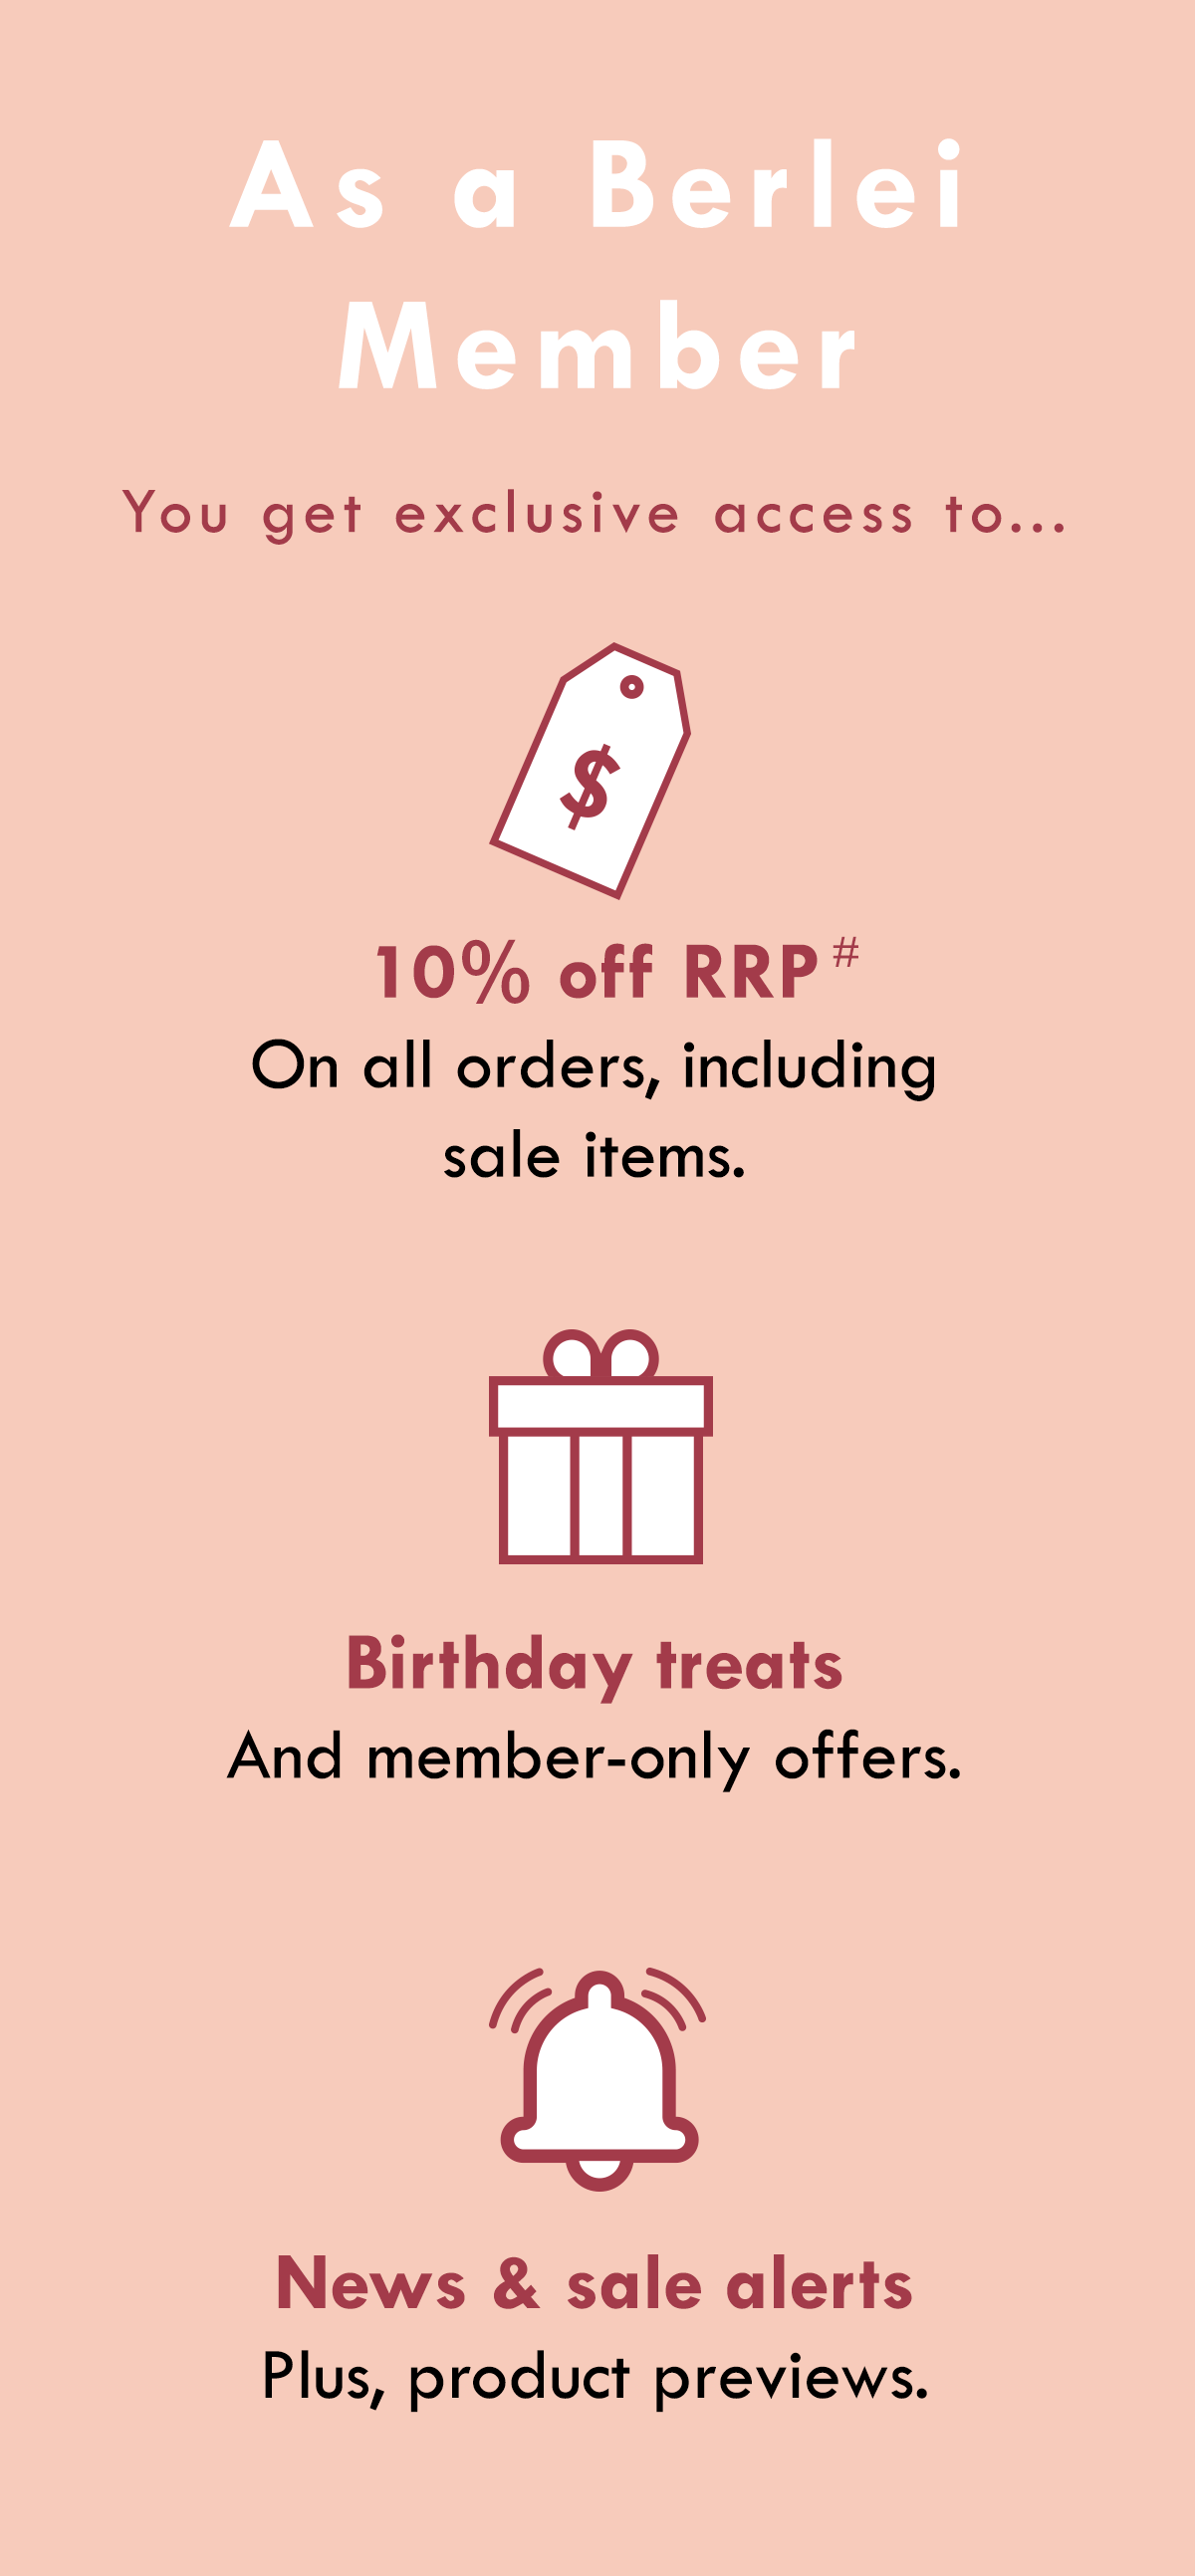 As a Berlei Member you get exclusive access to... 10% off RRP on all orders, including sale items. Birthday treats and member-only offers. News & sale alerts, plus product previews.